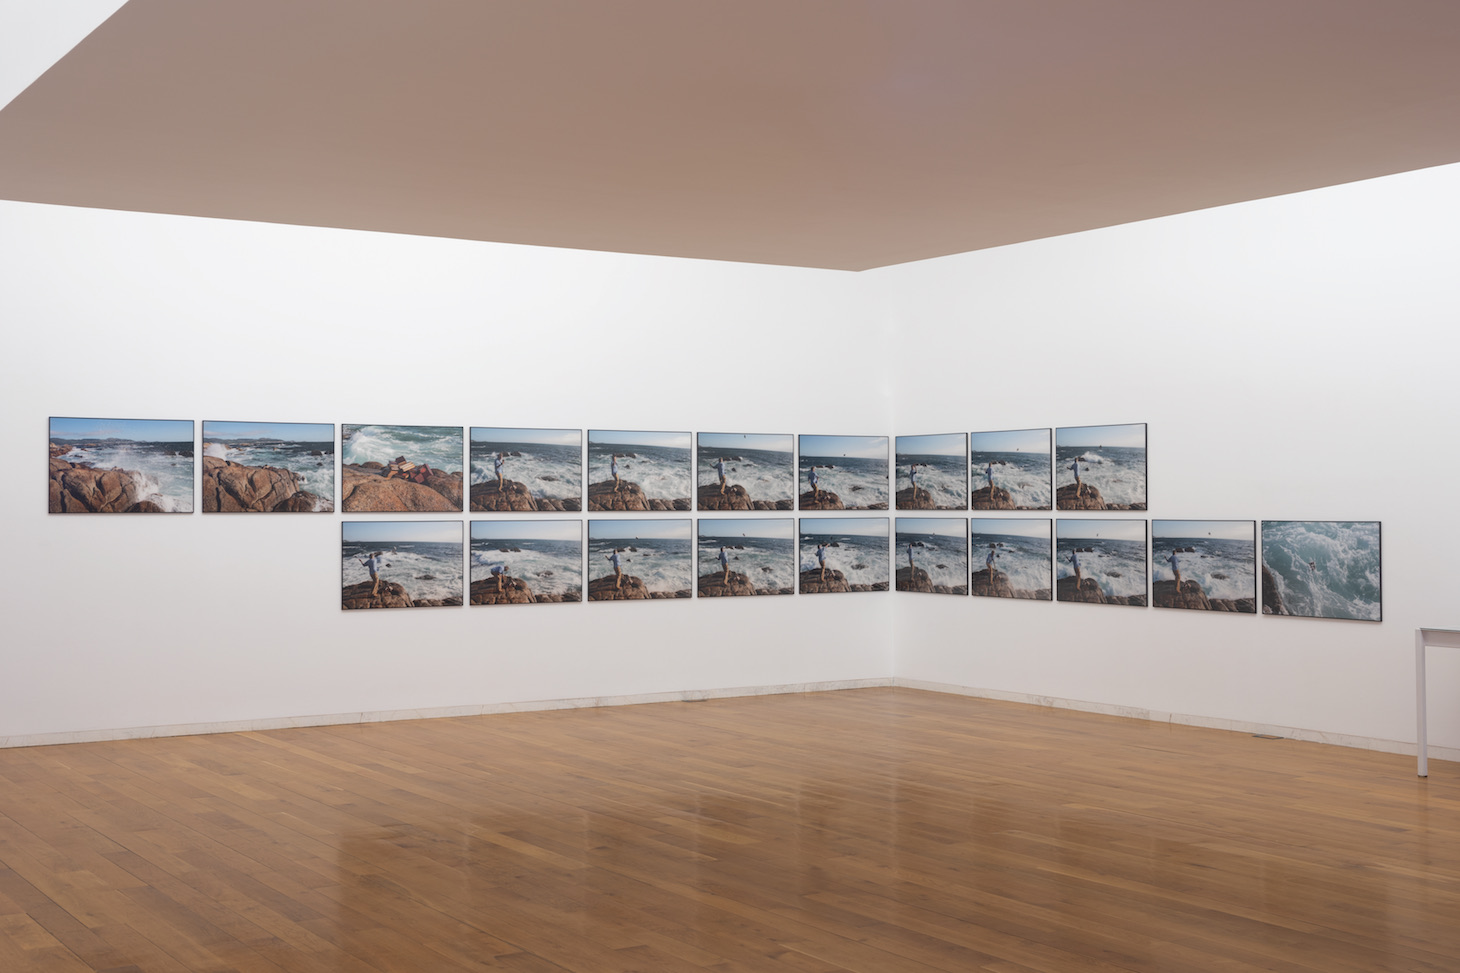 """SANTIAGO DE COMPOSTELA, Spain — Part of the first era of artists to critique the legacy of the Spanish civil struggle, Francesc Torres has lengthy investigated the reminiscence and detritus of violence. His exhibition in Galicia, which samples 5 a long time of his inventive manufacturing, frames these considerations by means of the native follow of amassing """"crebas,"""" or objects washed in by the tide. Mixed media drawings and assemblages applicable army tools that may really feel heavy-handed if not for its quotidian use. Installations immerse the viewer in the ambiguous reconstruction of historical past."""